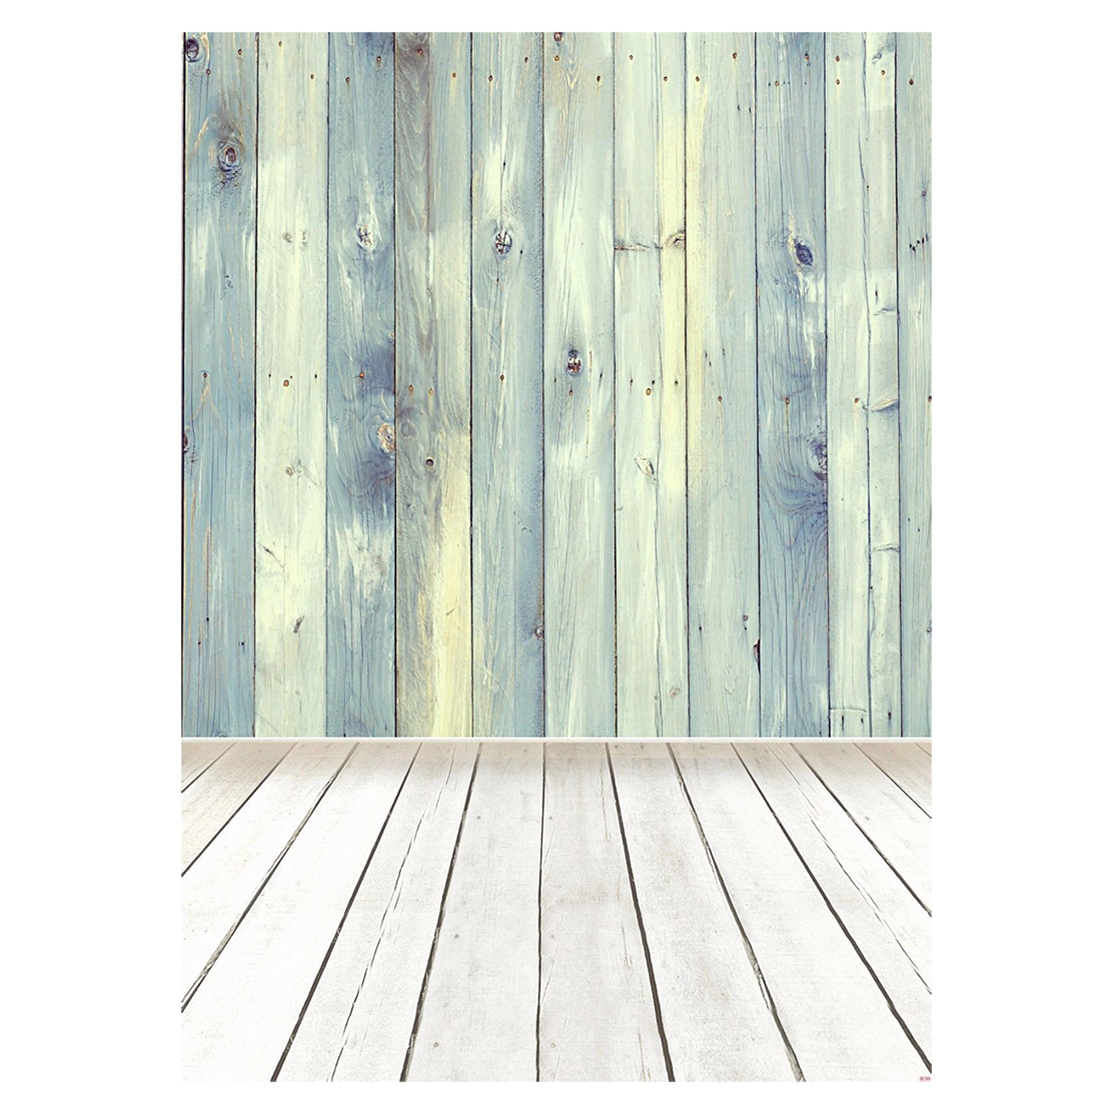 Background stand wooden floor wall photo props Photography background cloth Vinyl, Light blue + gray-white Stripe игрушка ecx ruckus gray blue ecx00013t1